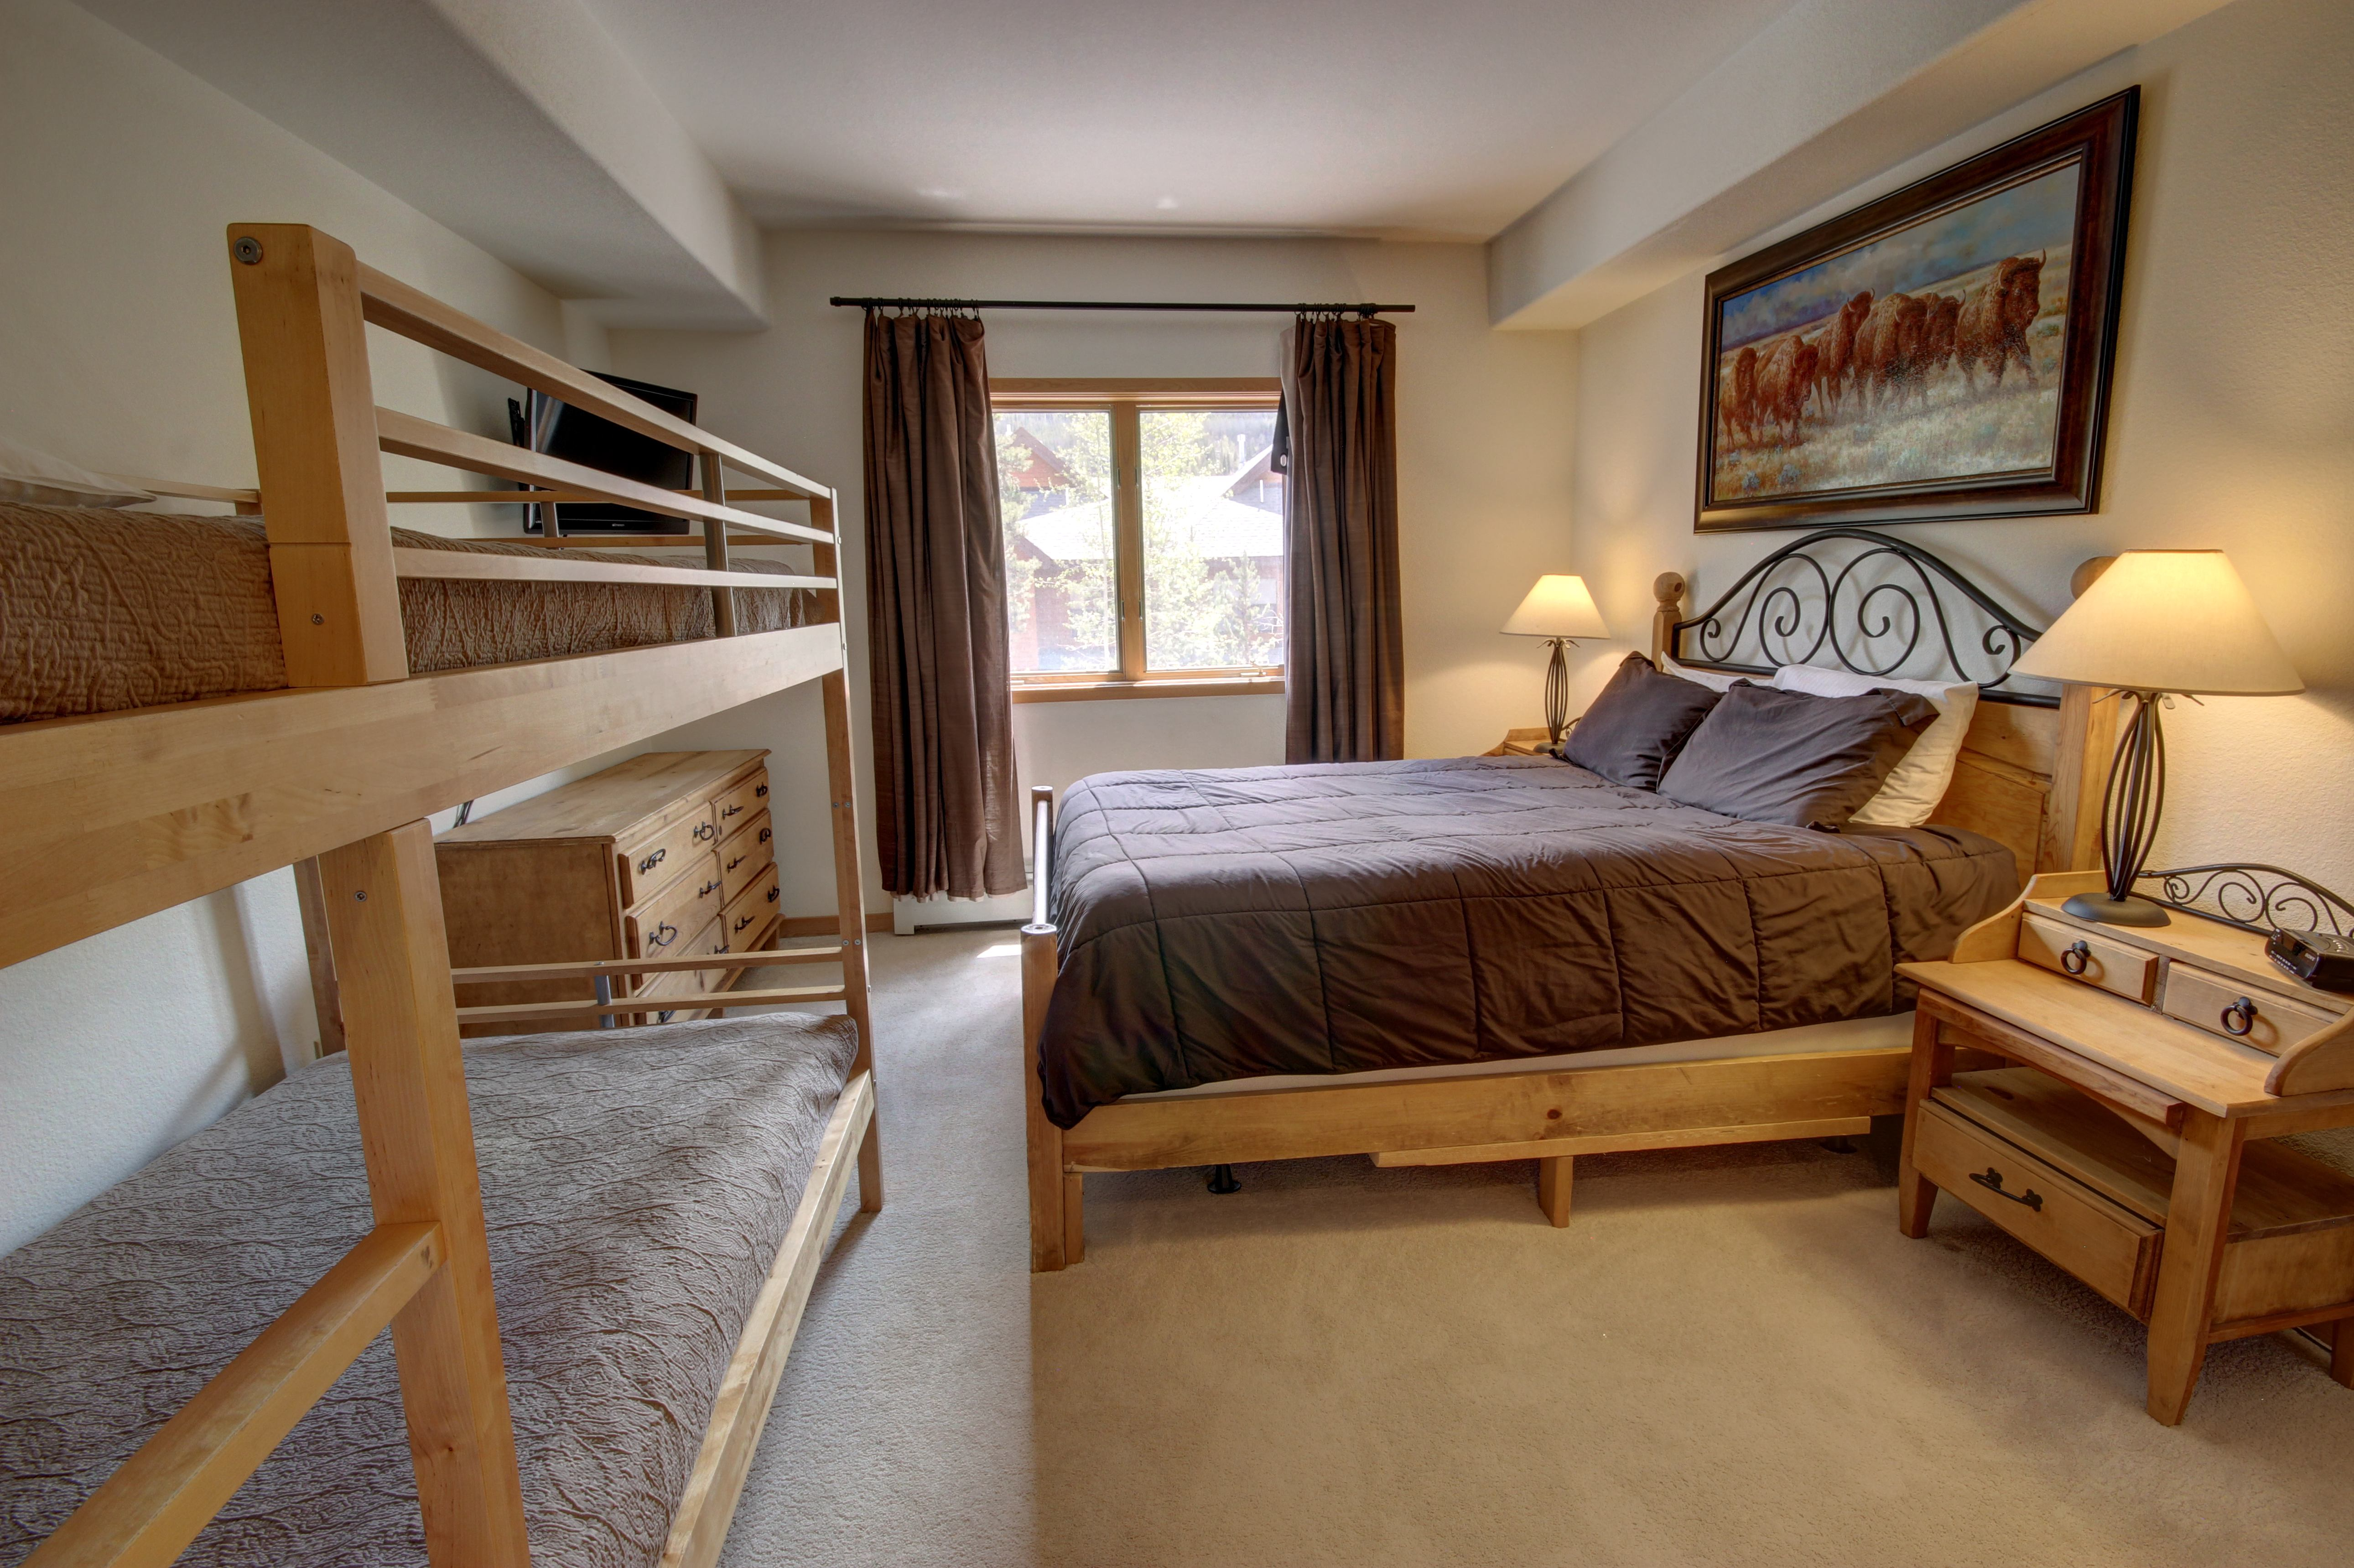 Bedroom perfect for small kids and their parents